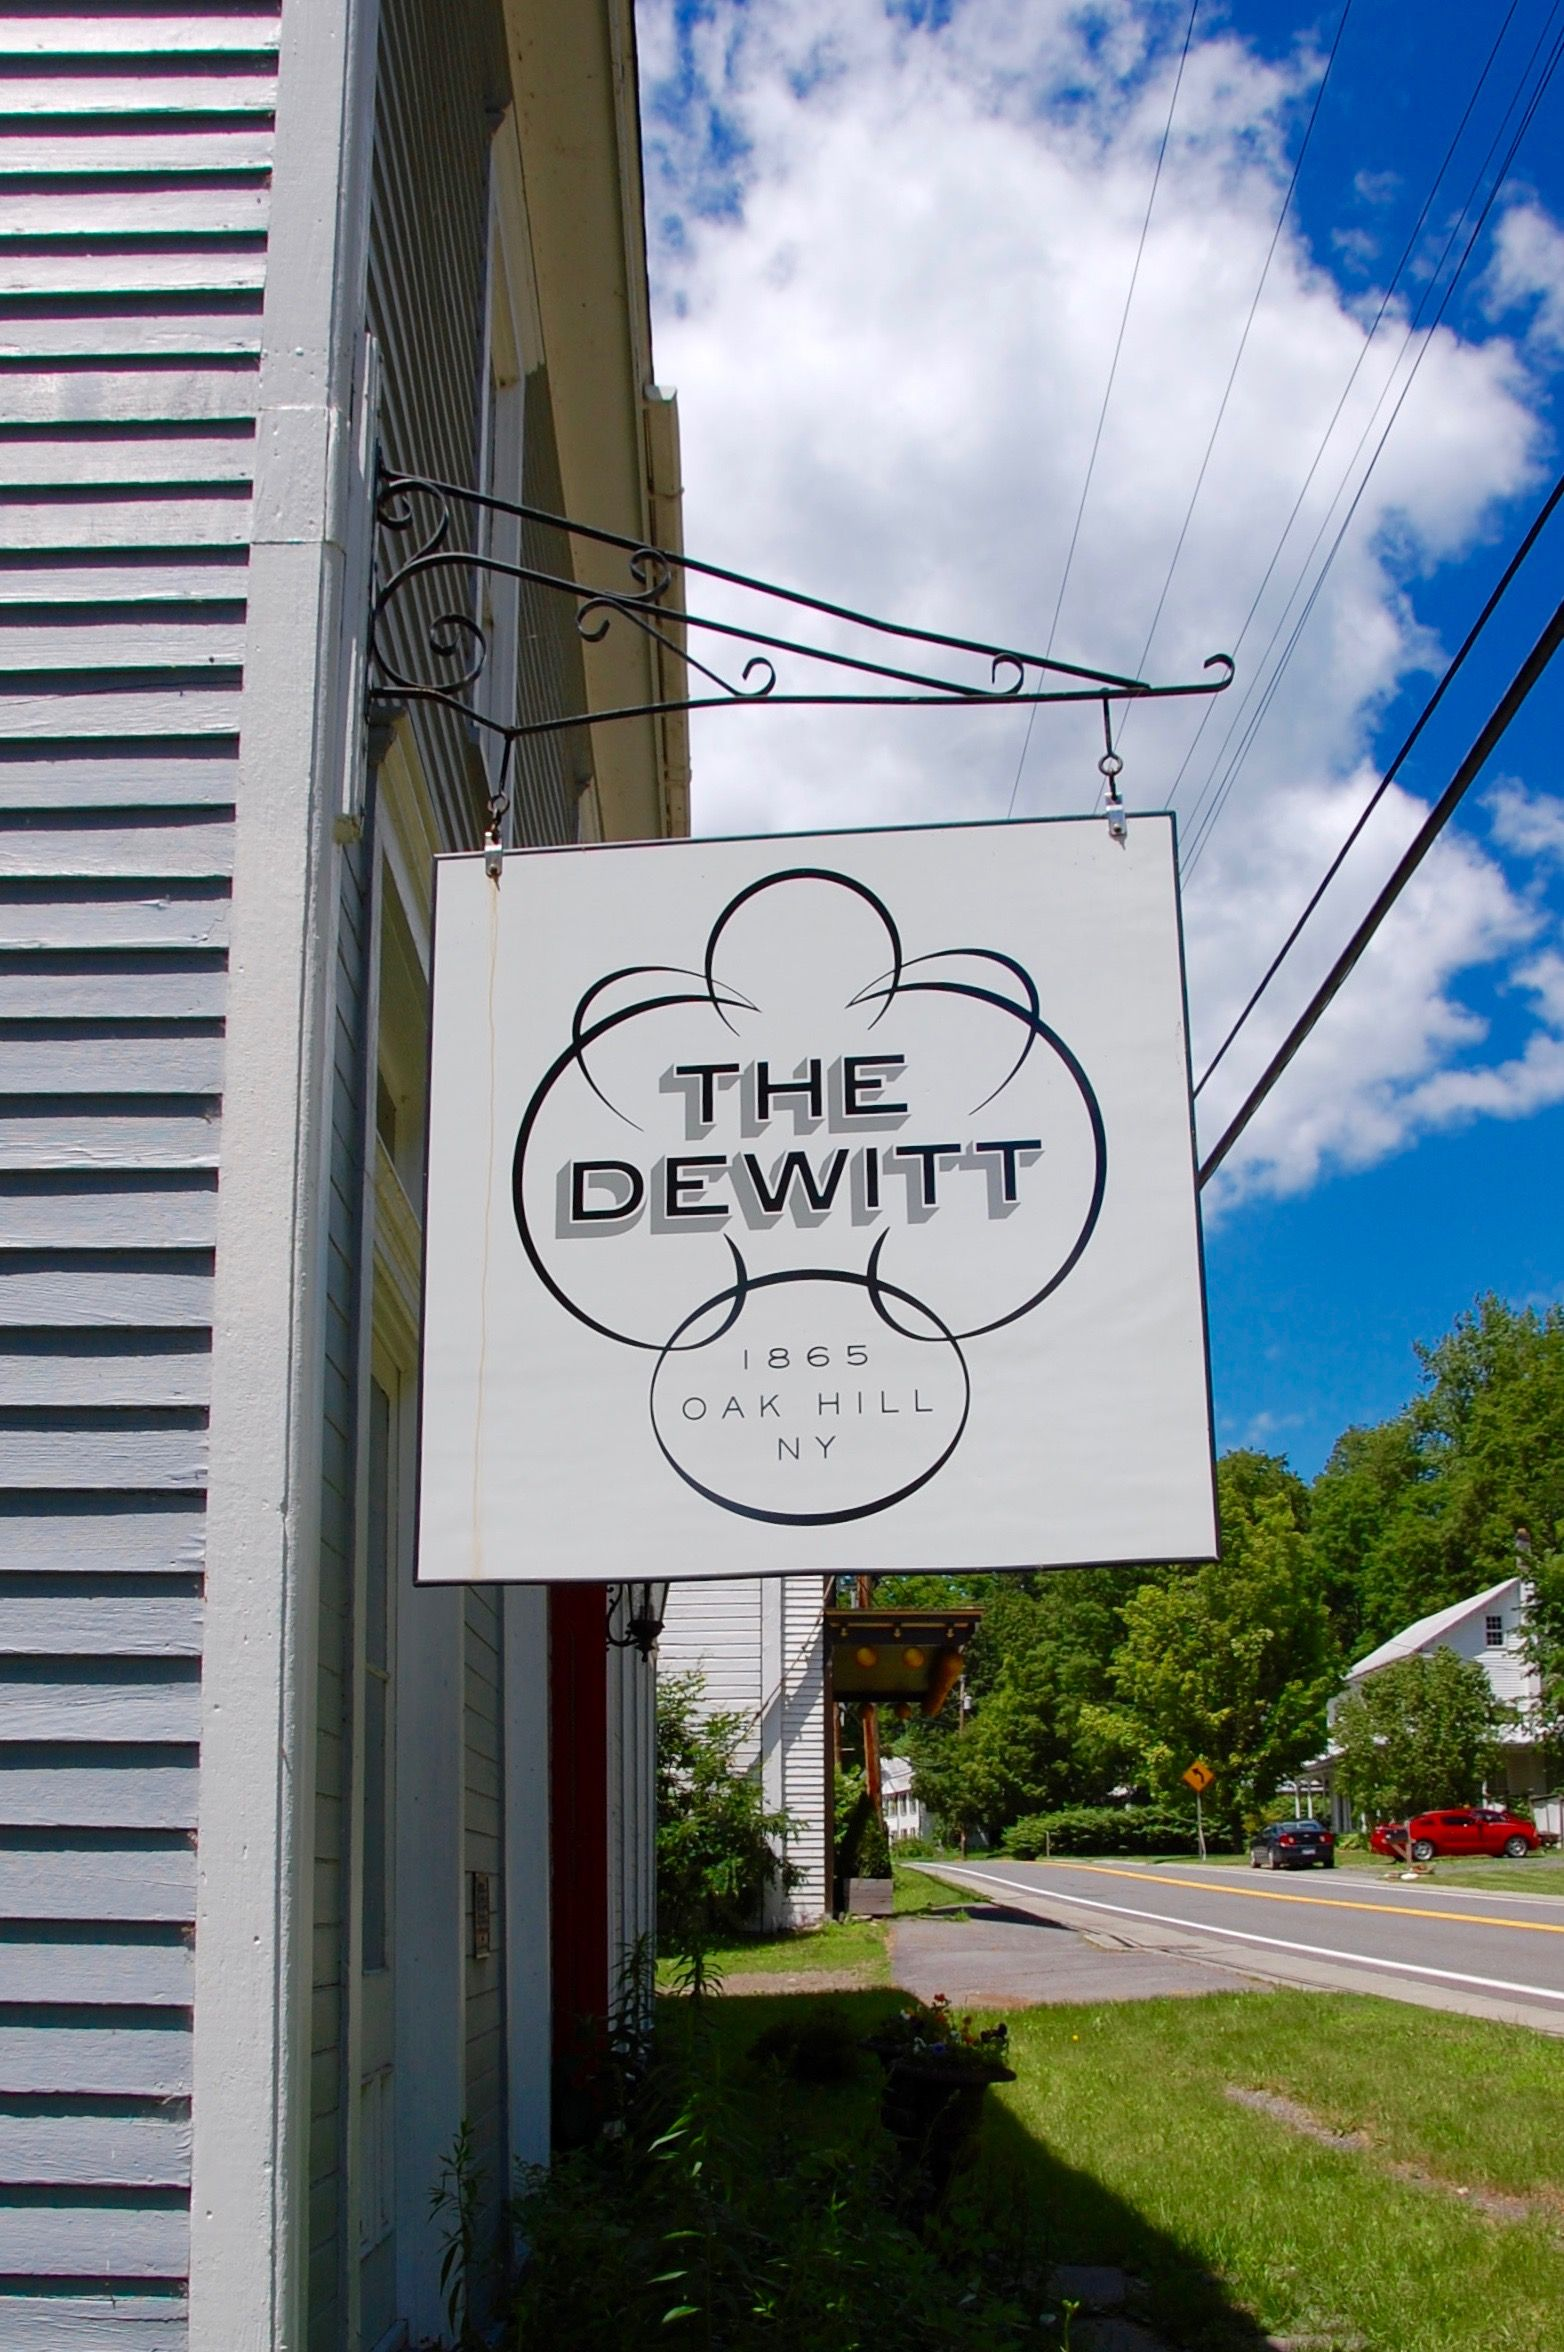 The Dewitt Oak Hill Comfort, Charm, and Glamour on the